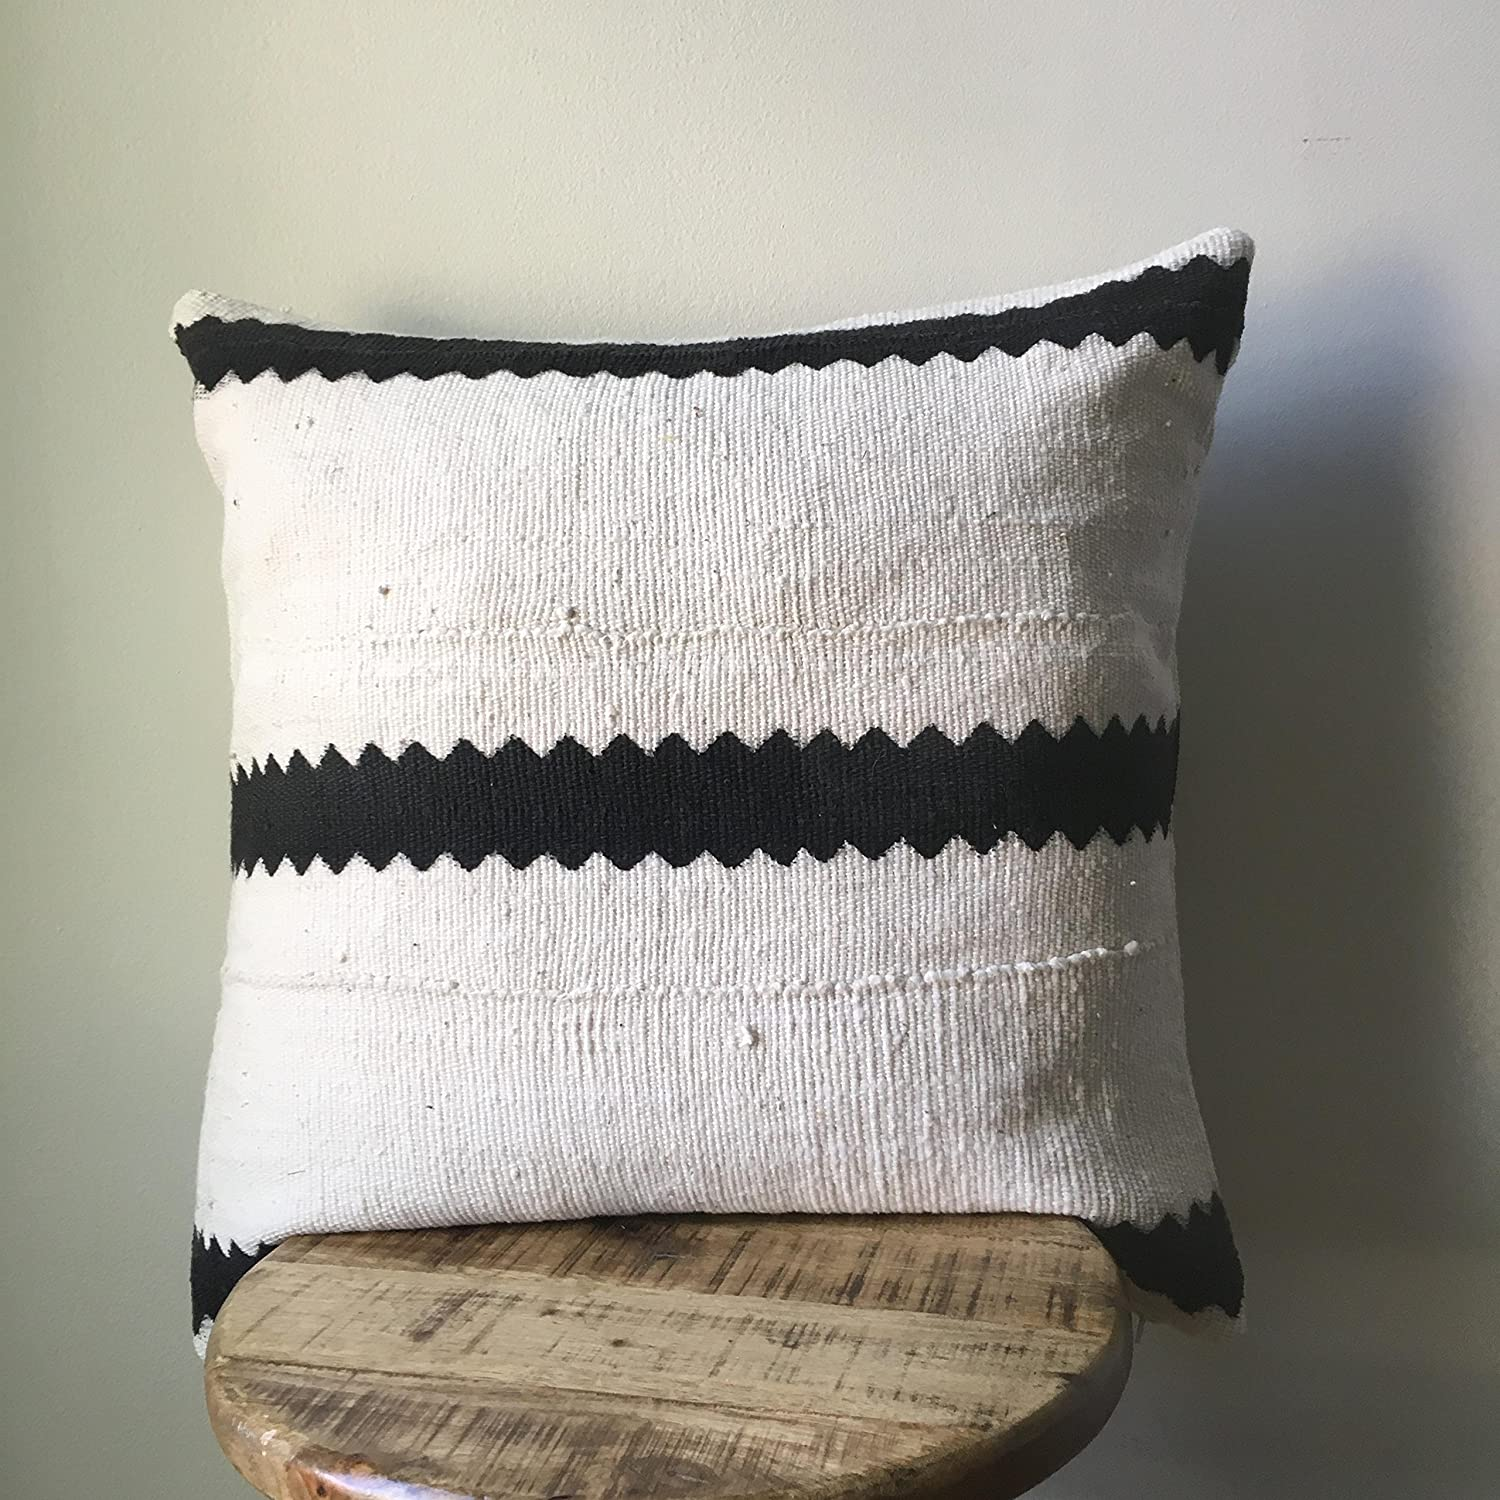 Striped Pattern Mudcloth Pillow - Handmade -More Sizes Available